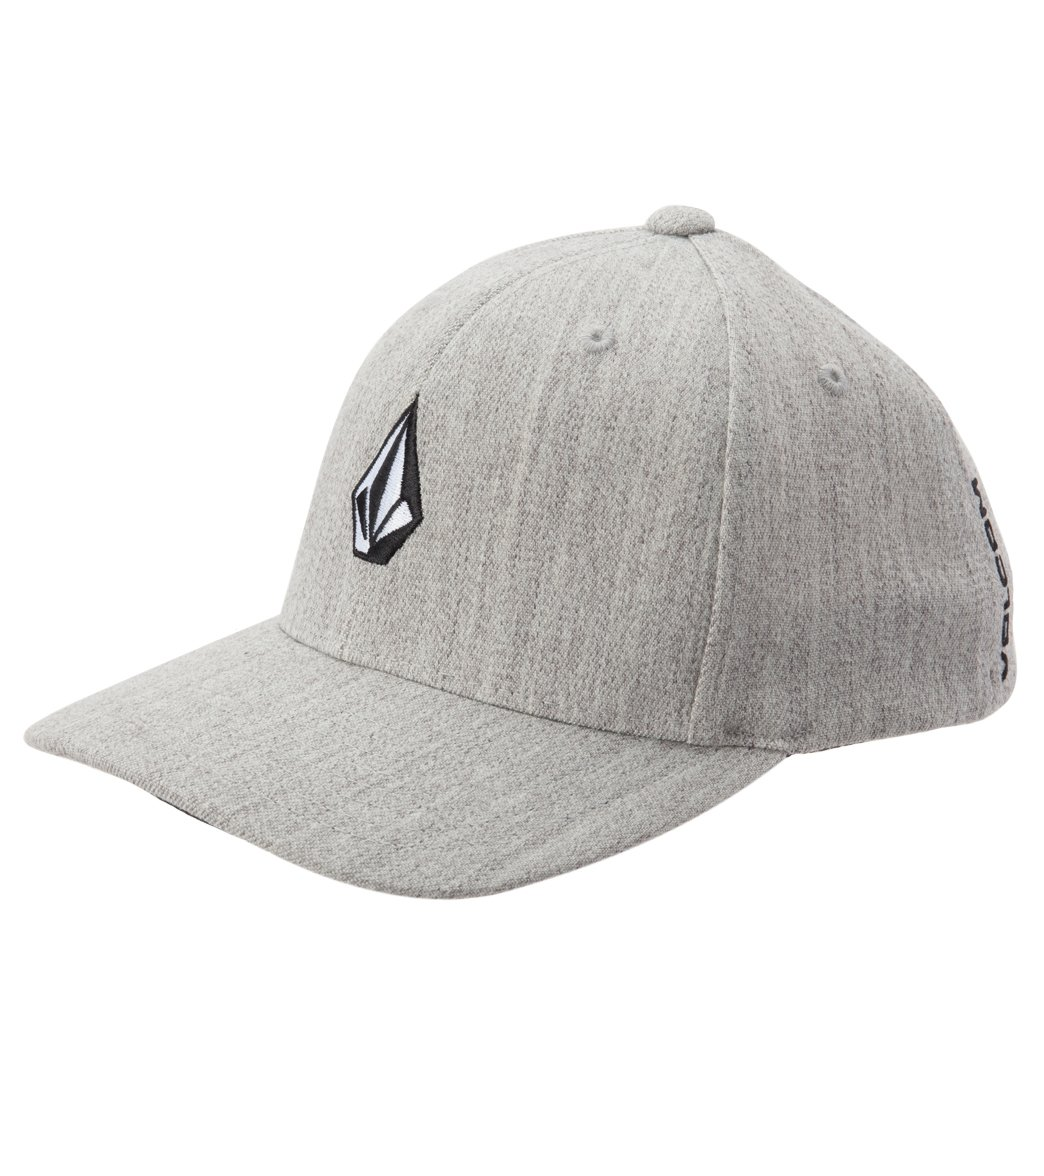 12d0c612db1b2 Volcom Boys  Full Stone Heather X Fit Cap (Little Youth) at SwimOutlet ...